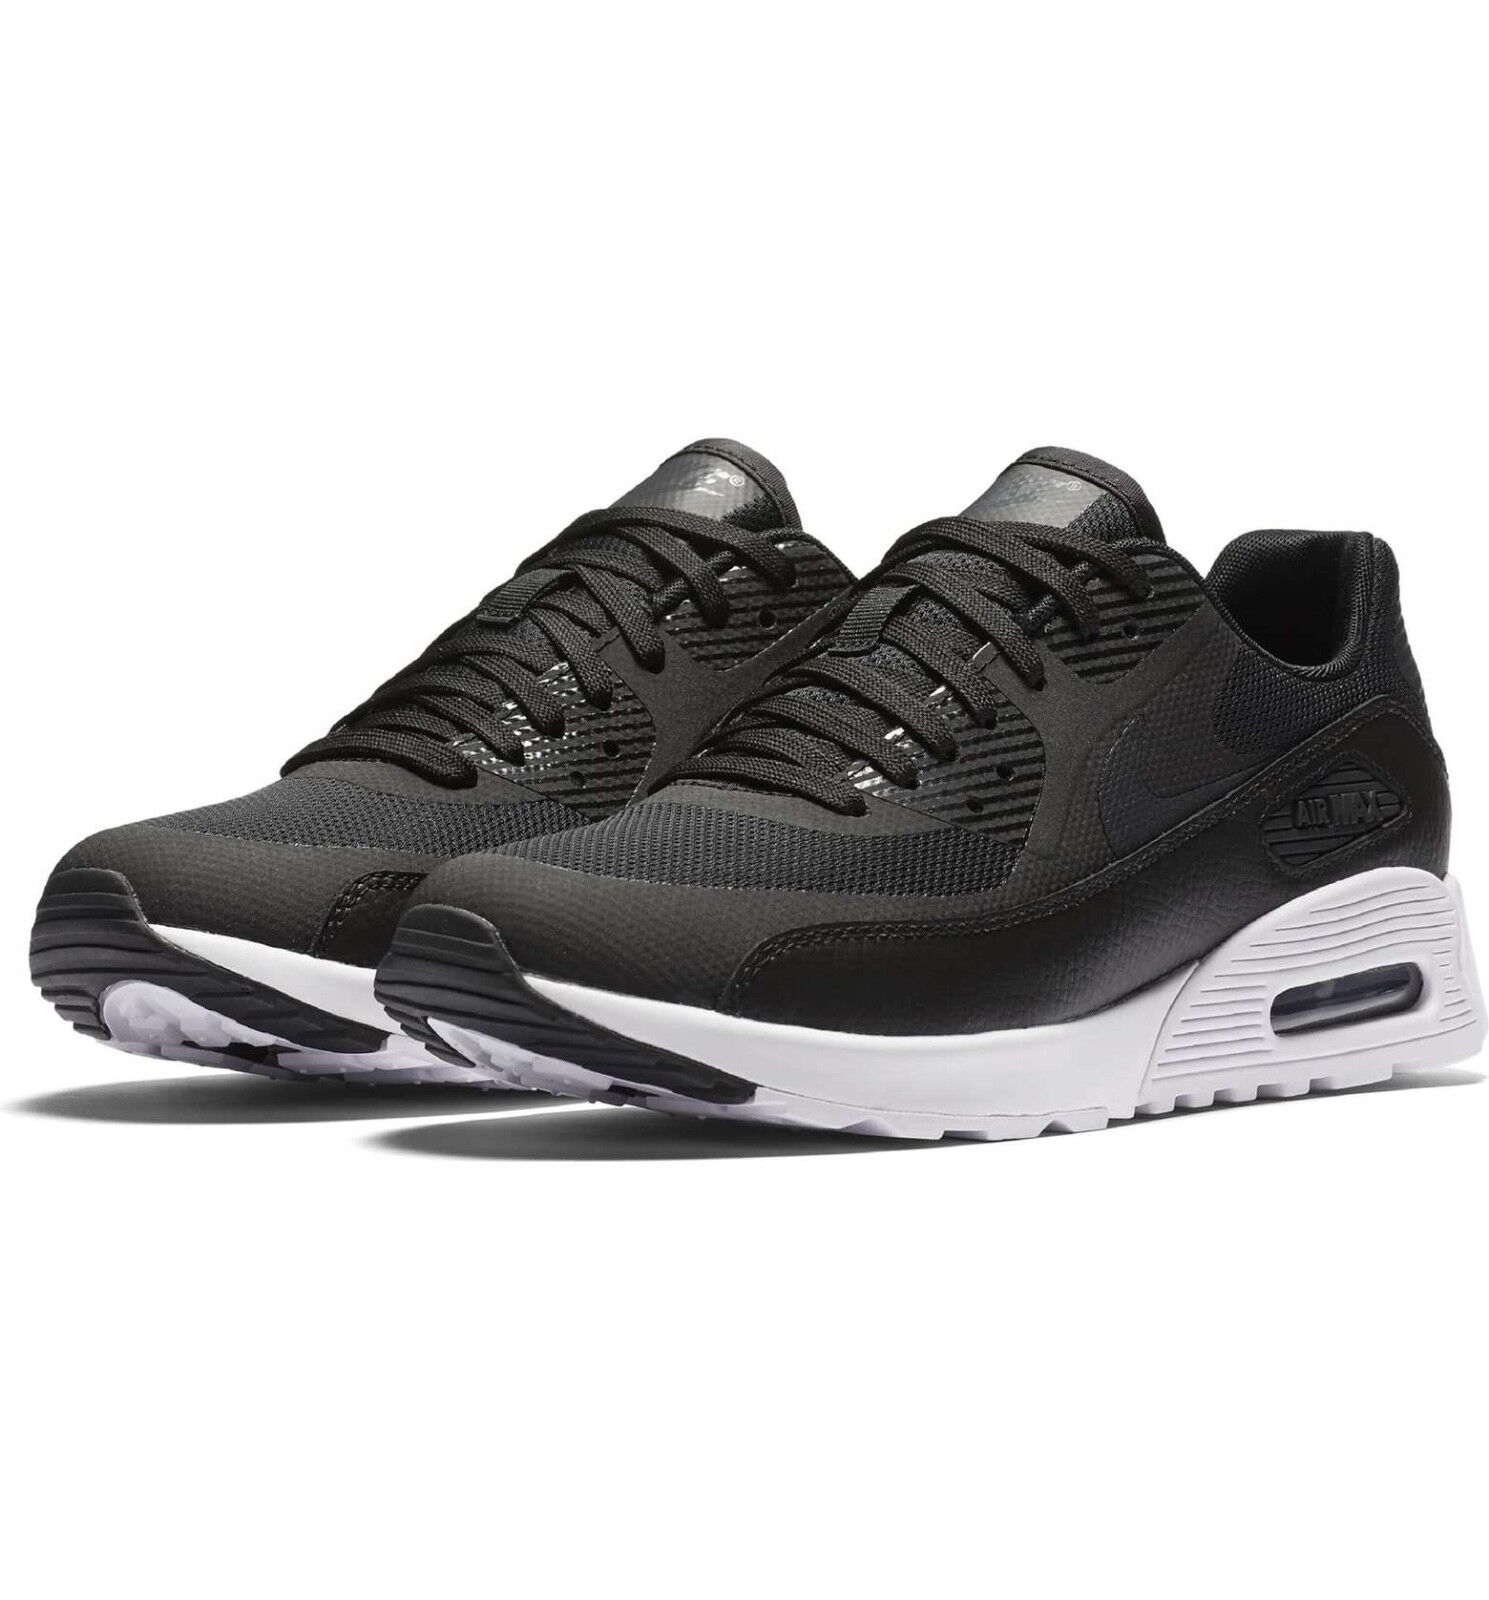 c7ffc1fddc Nike Women Air Max 90 Ultra 2.0 Sneaker Leather Black Running 6.5 881106-002  New